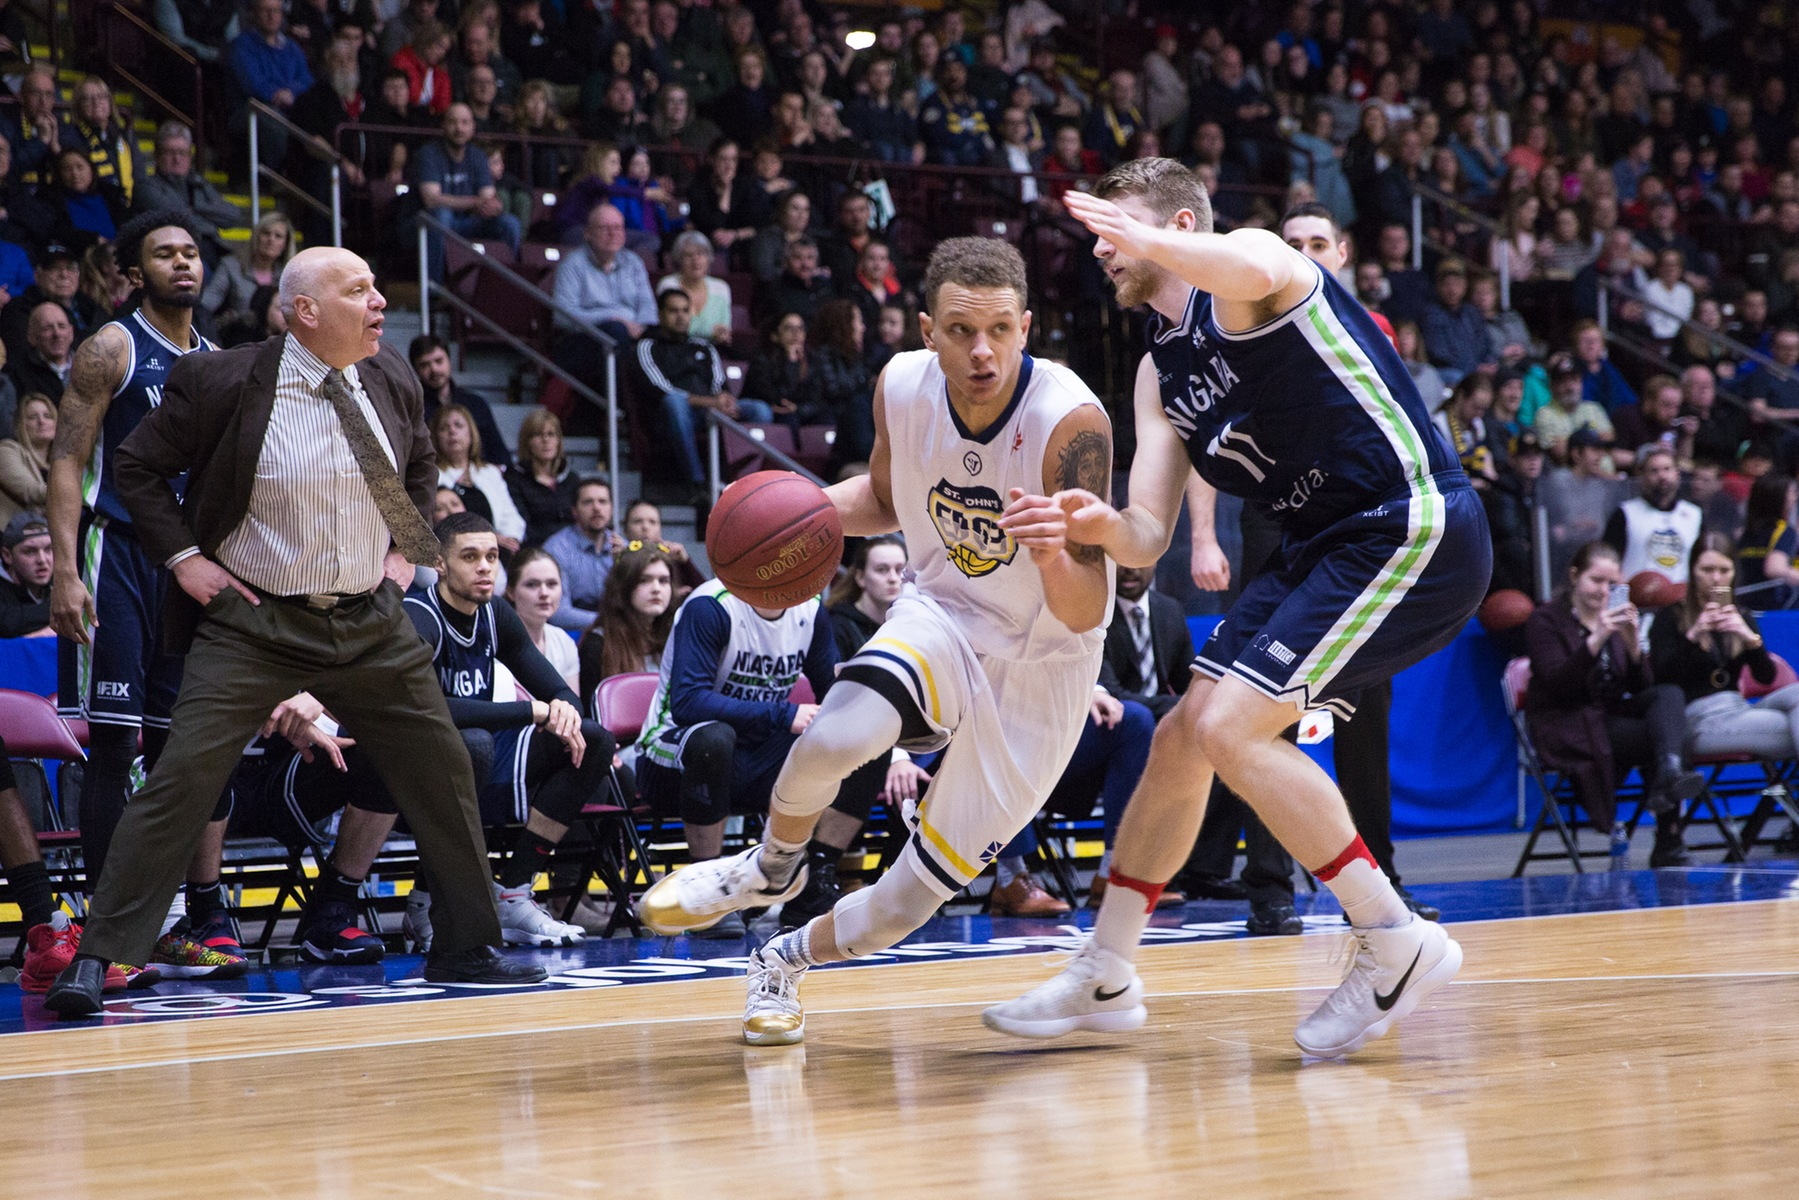 River Lions Swamp the Edge, 88-99